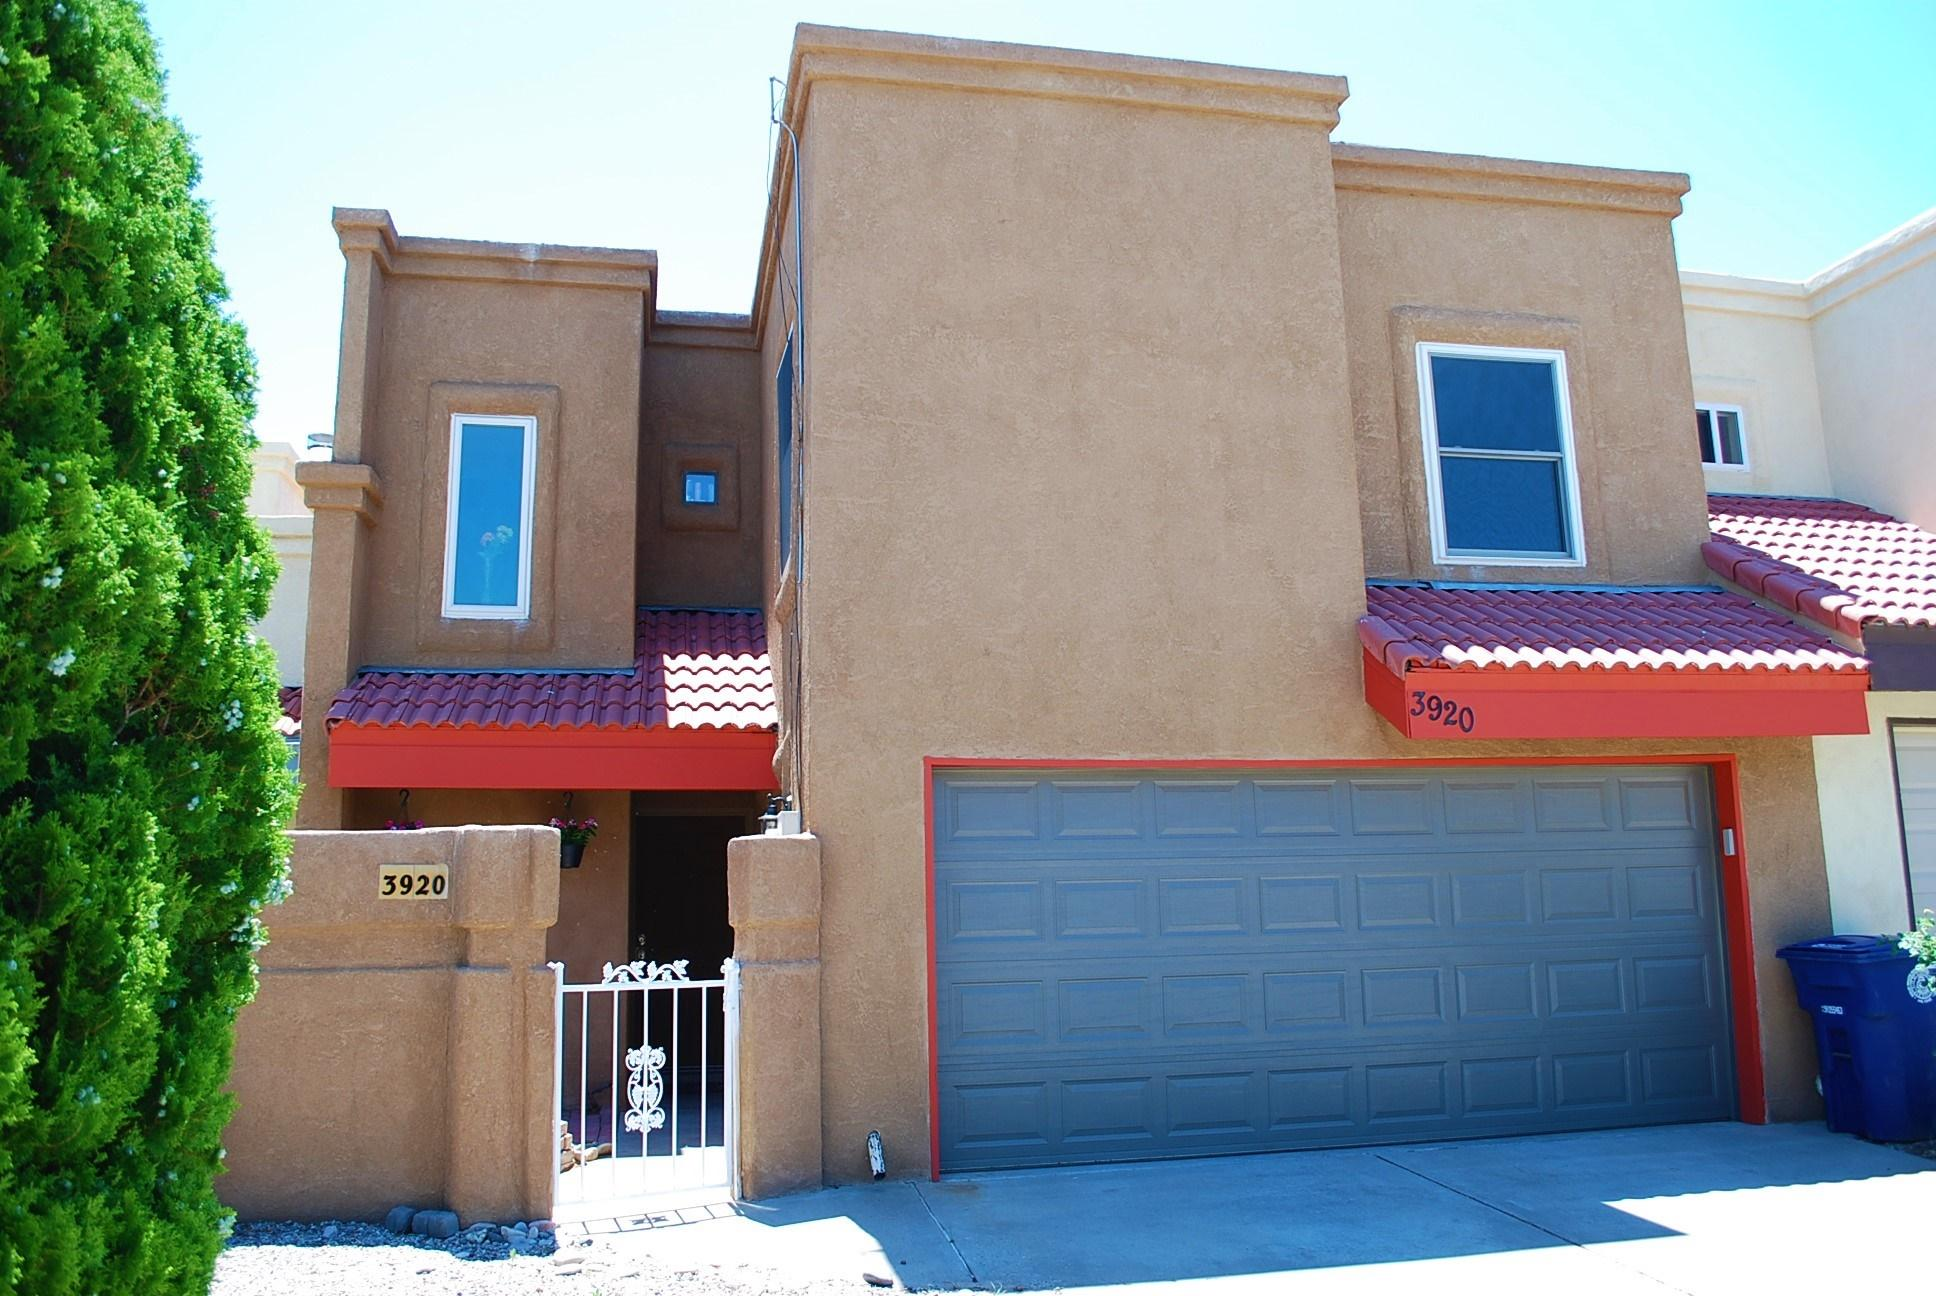 One of Northwest Albuquerque and Northwest Heights 3 Bedroom Homes for Sale at 3920 NW Ladera Drive